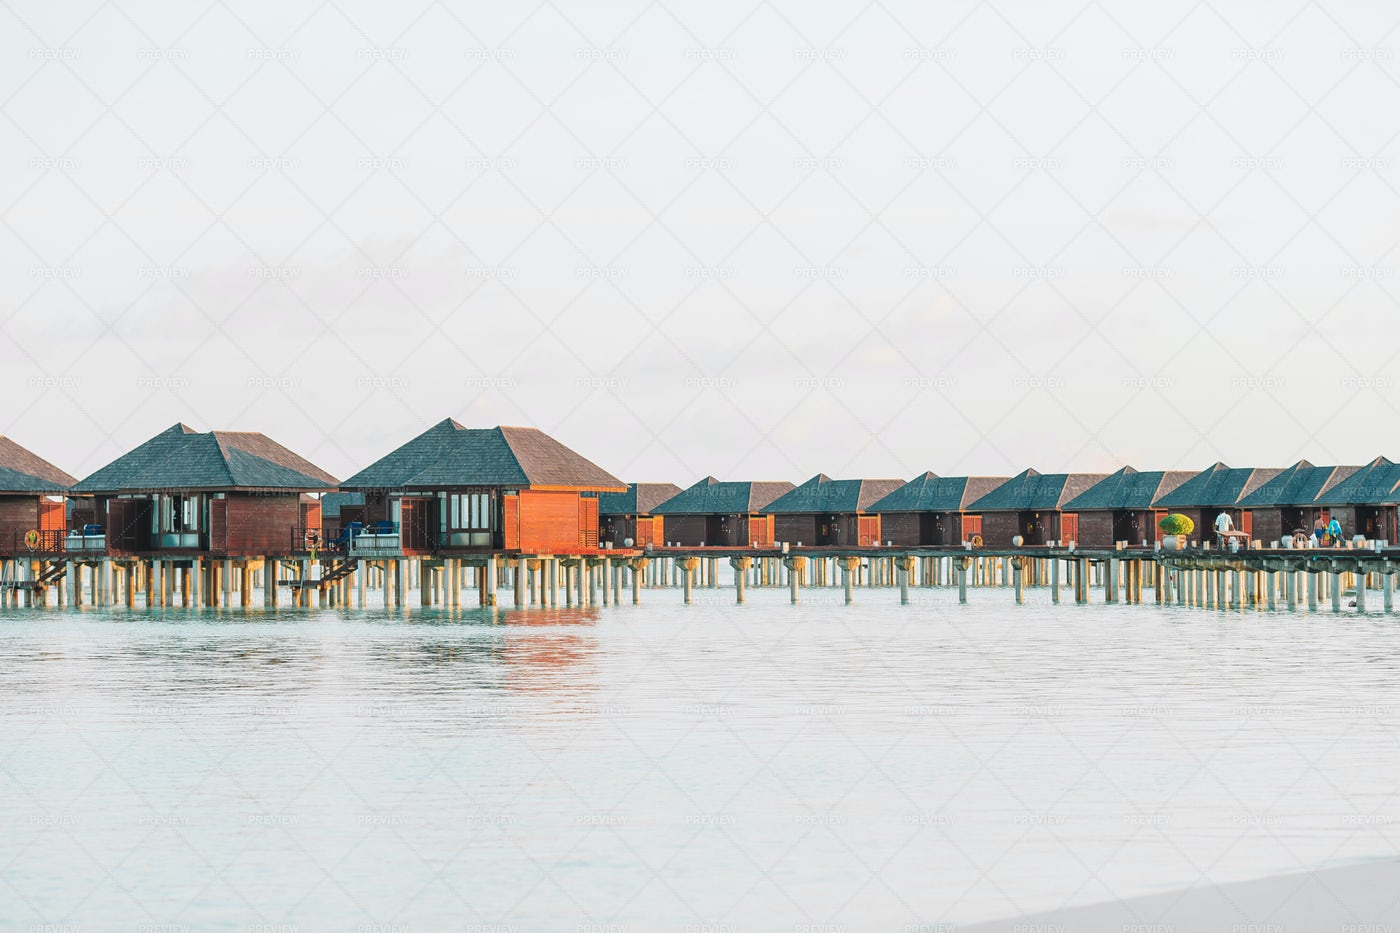 Water Bungalows And Calm Water: Stock Photos